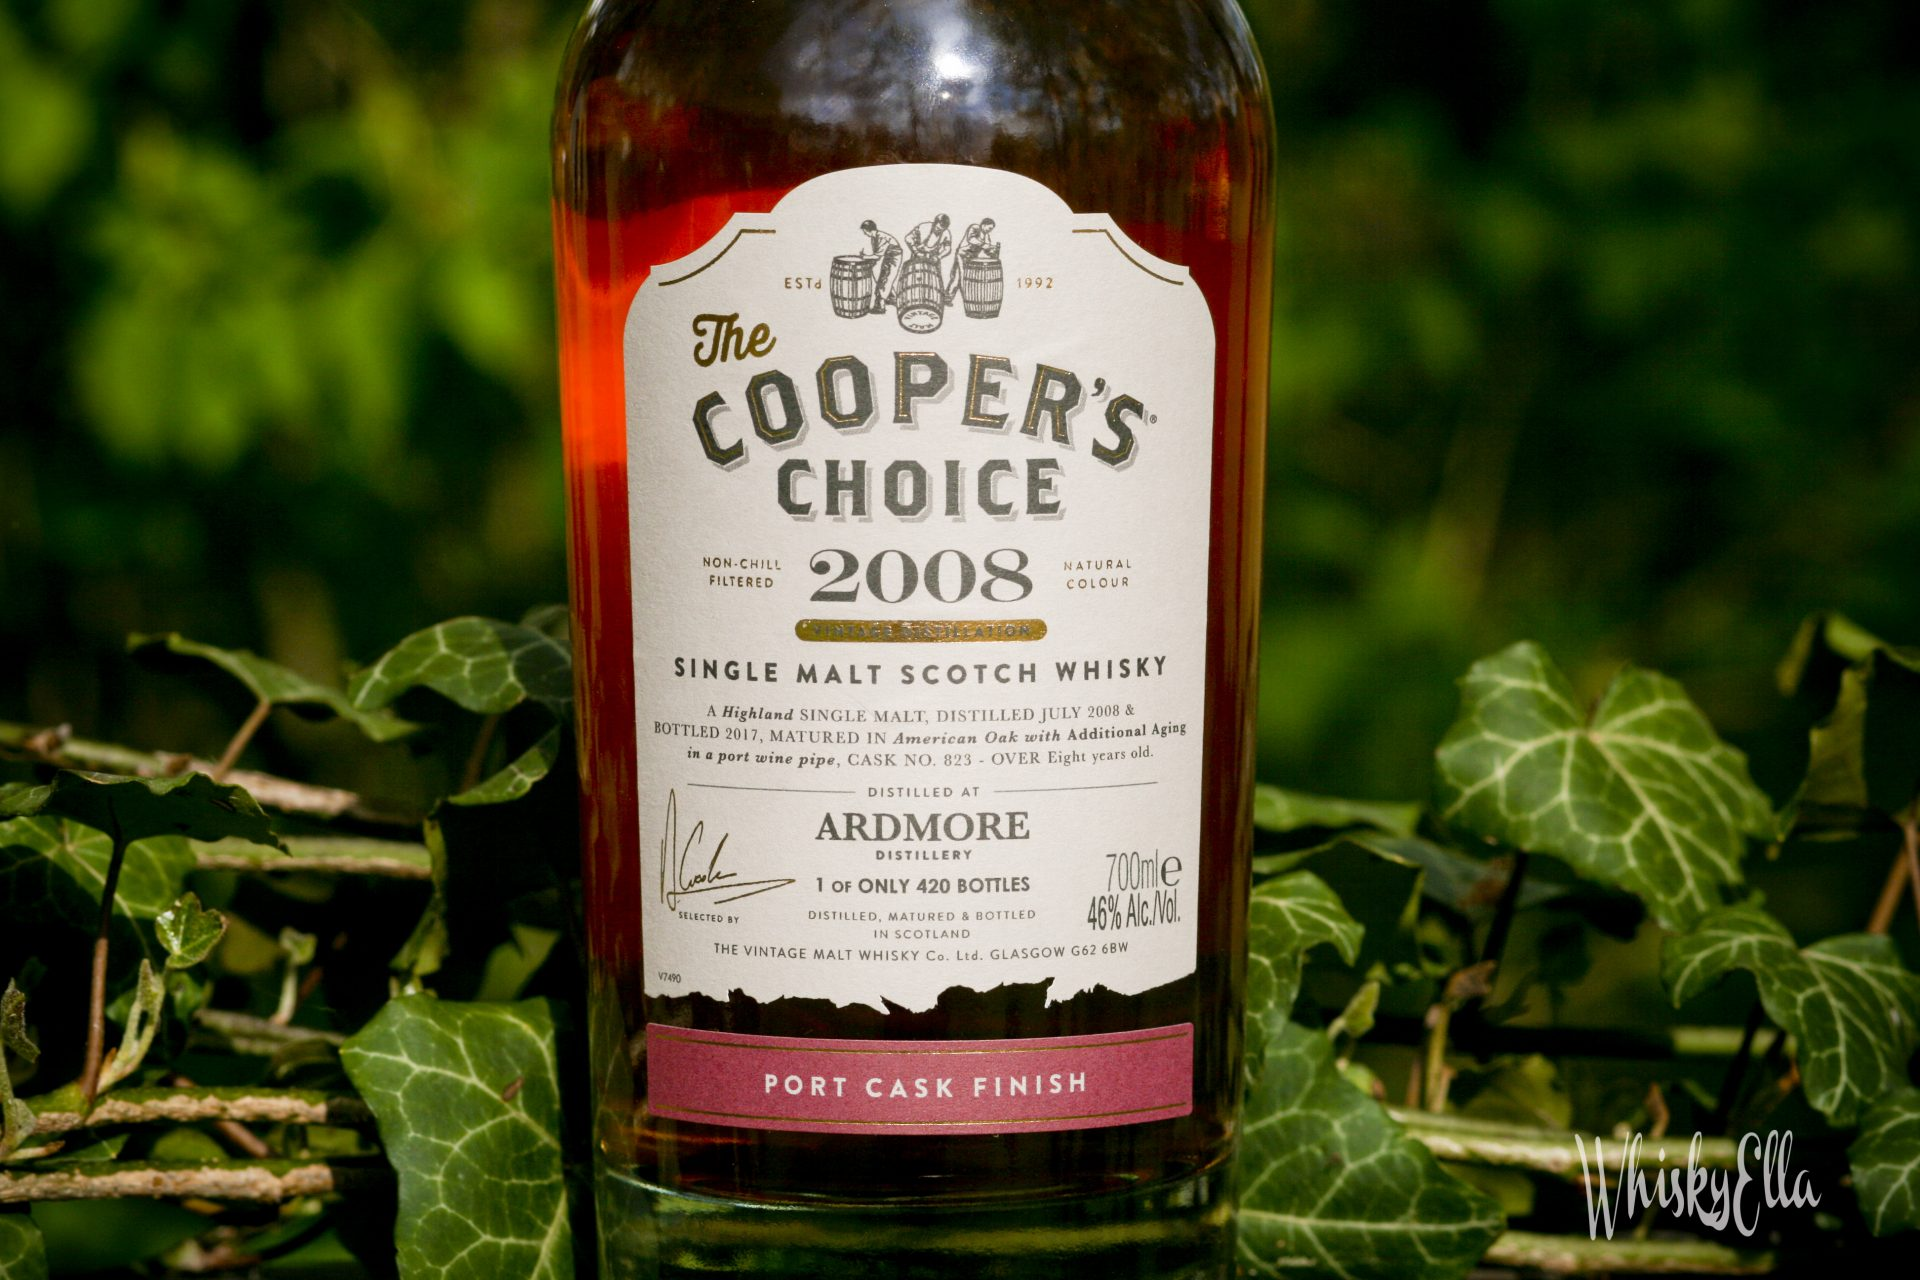 Nasza recenzja Ardmore 2008 Port Cask Finish The Cooper's Choice #69